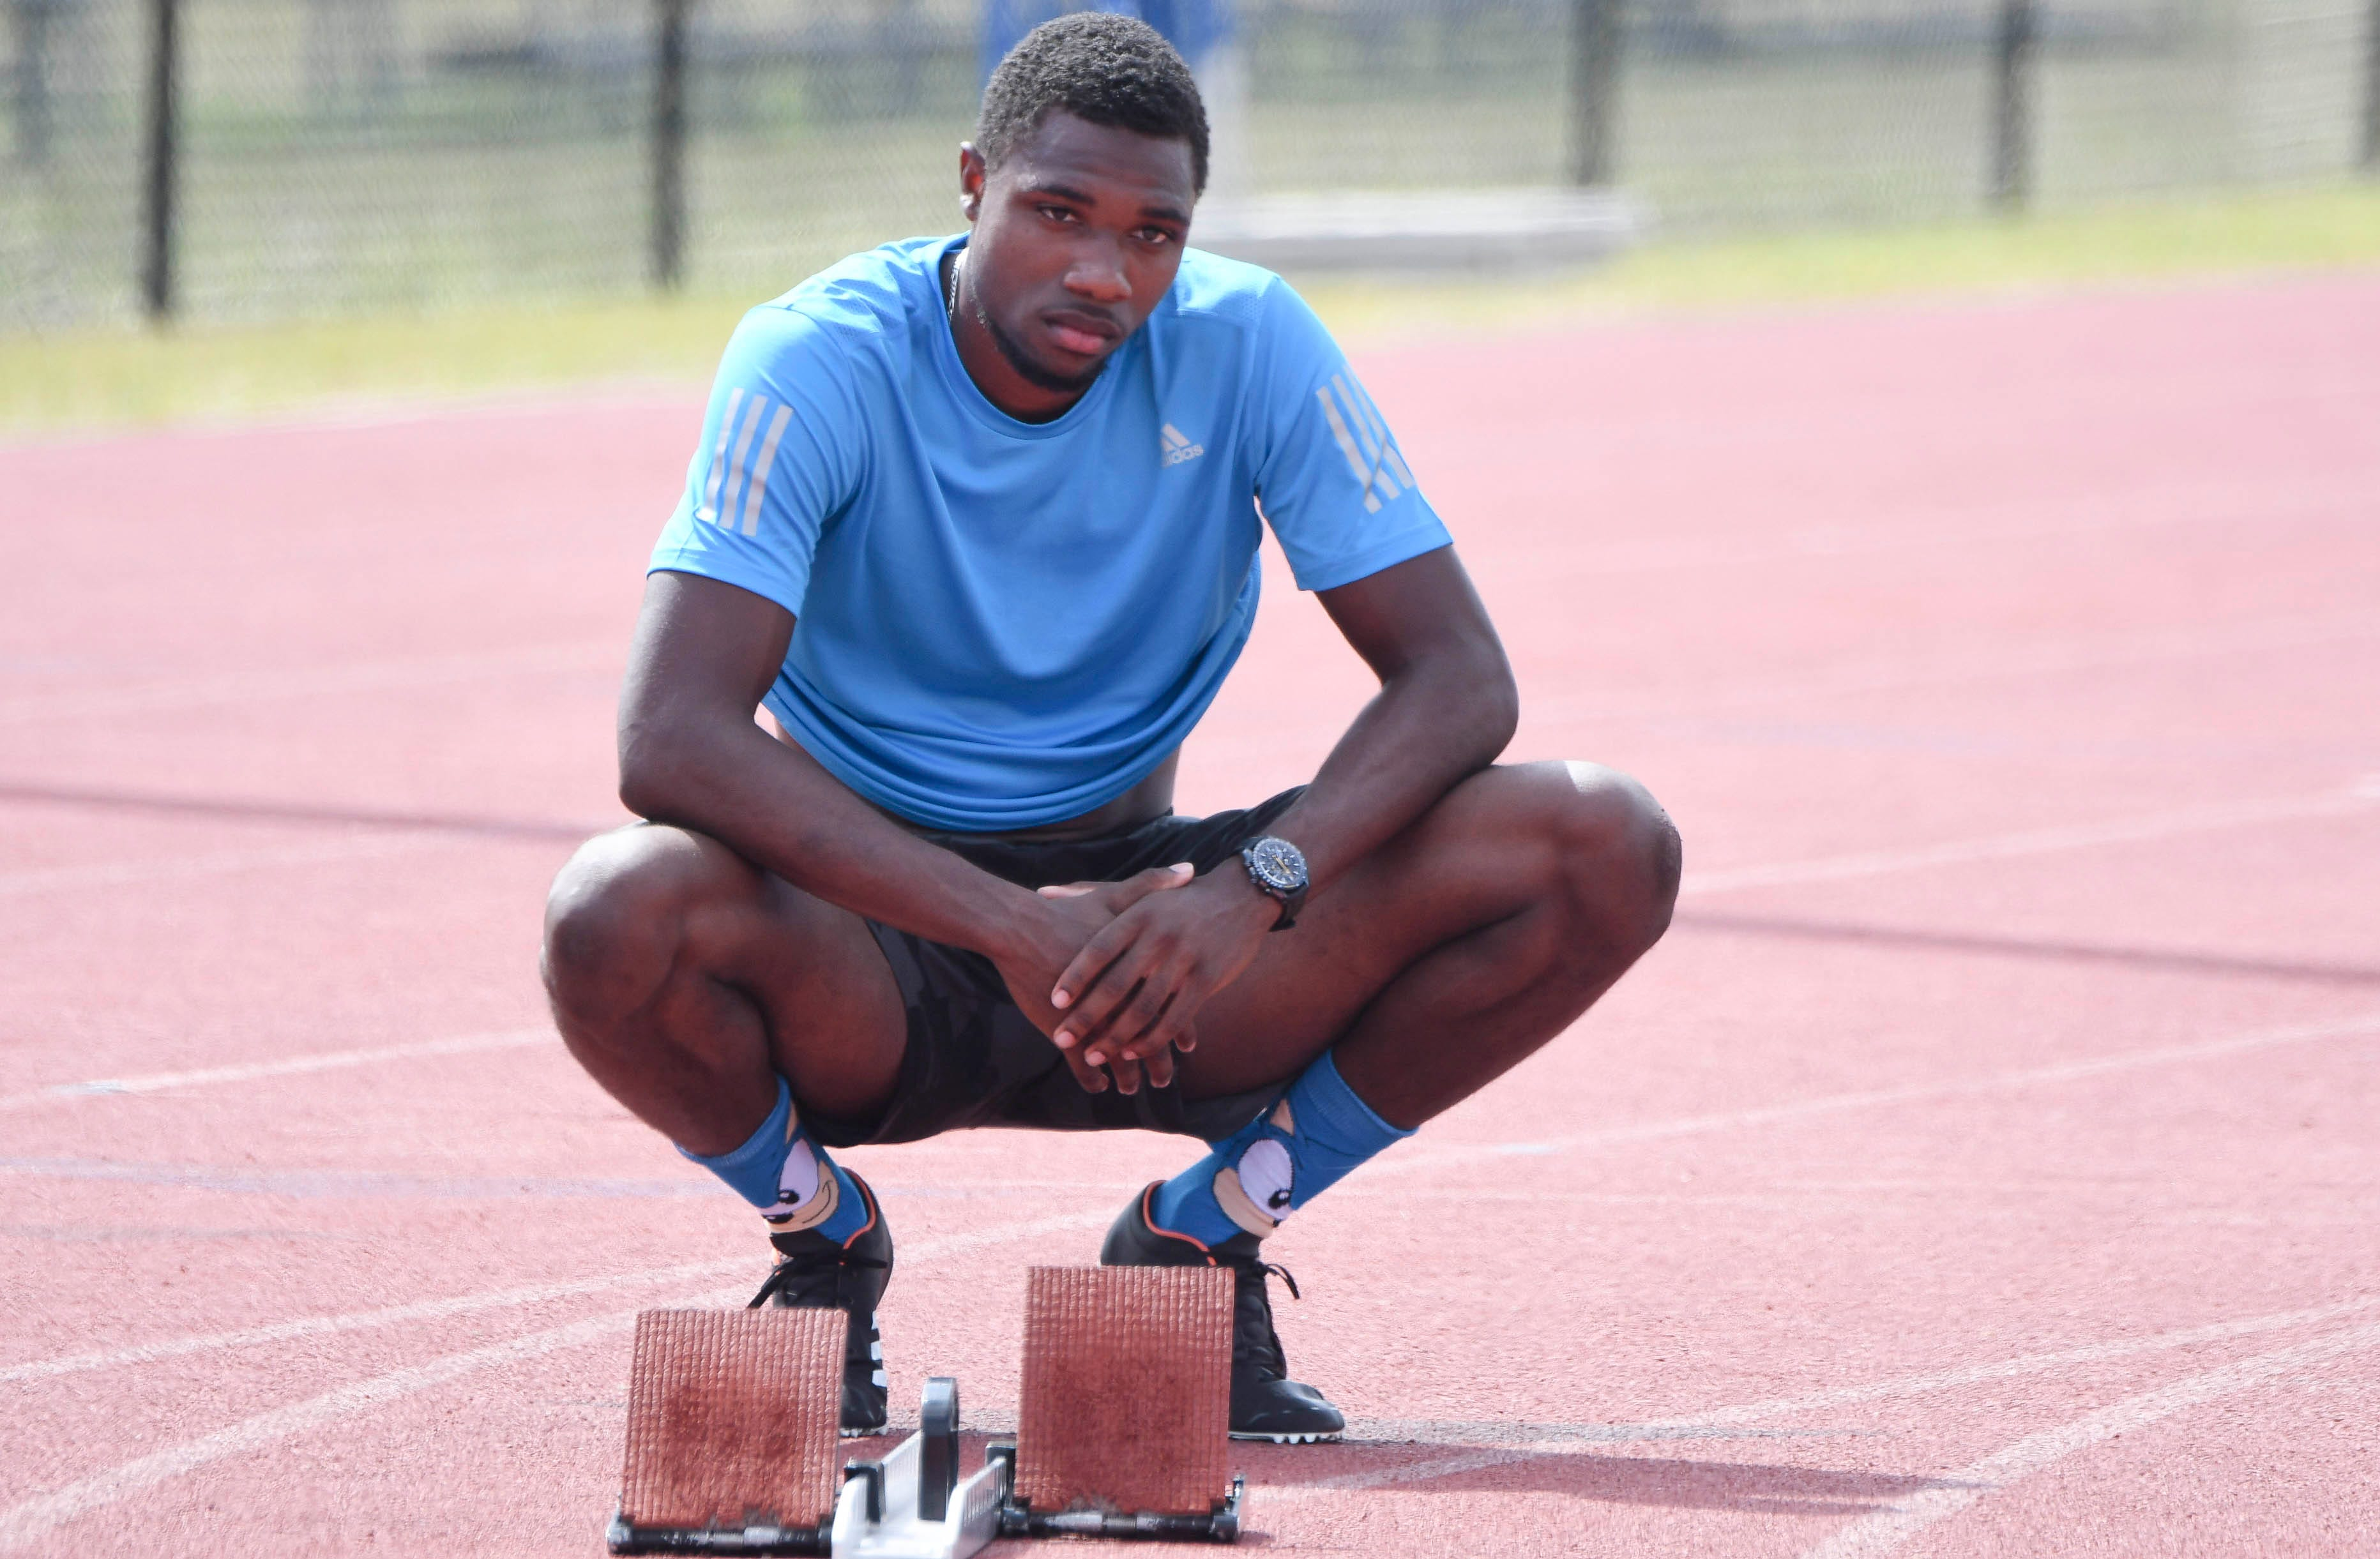 Noah Lyles is just the guy to pick up where Usain Bolt left off